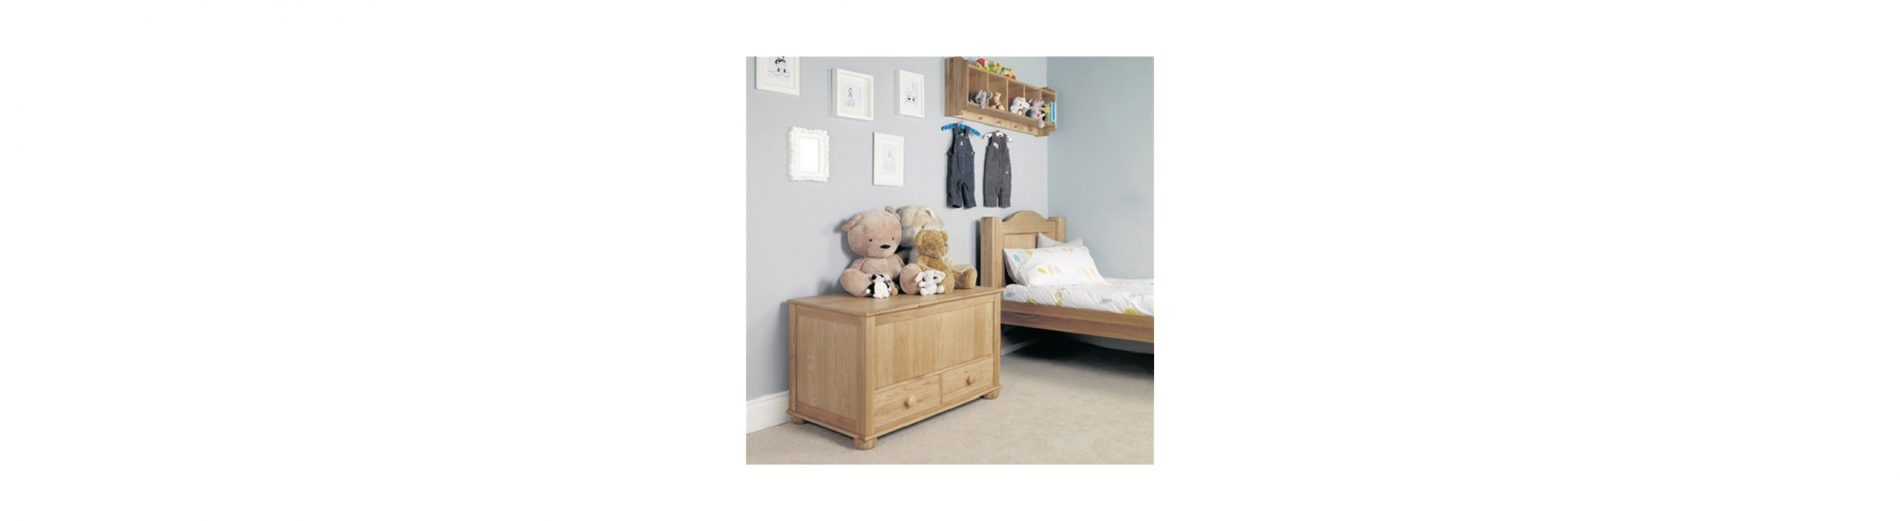 Toy Storage Units For The Living Room: Decoration Tips Without Breaking Your 'Adult' Pattern